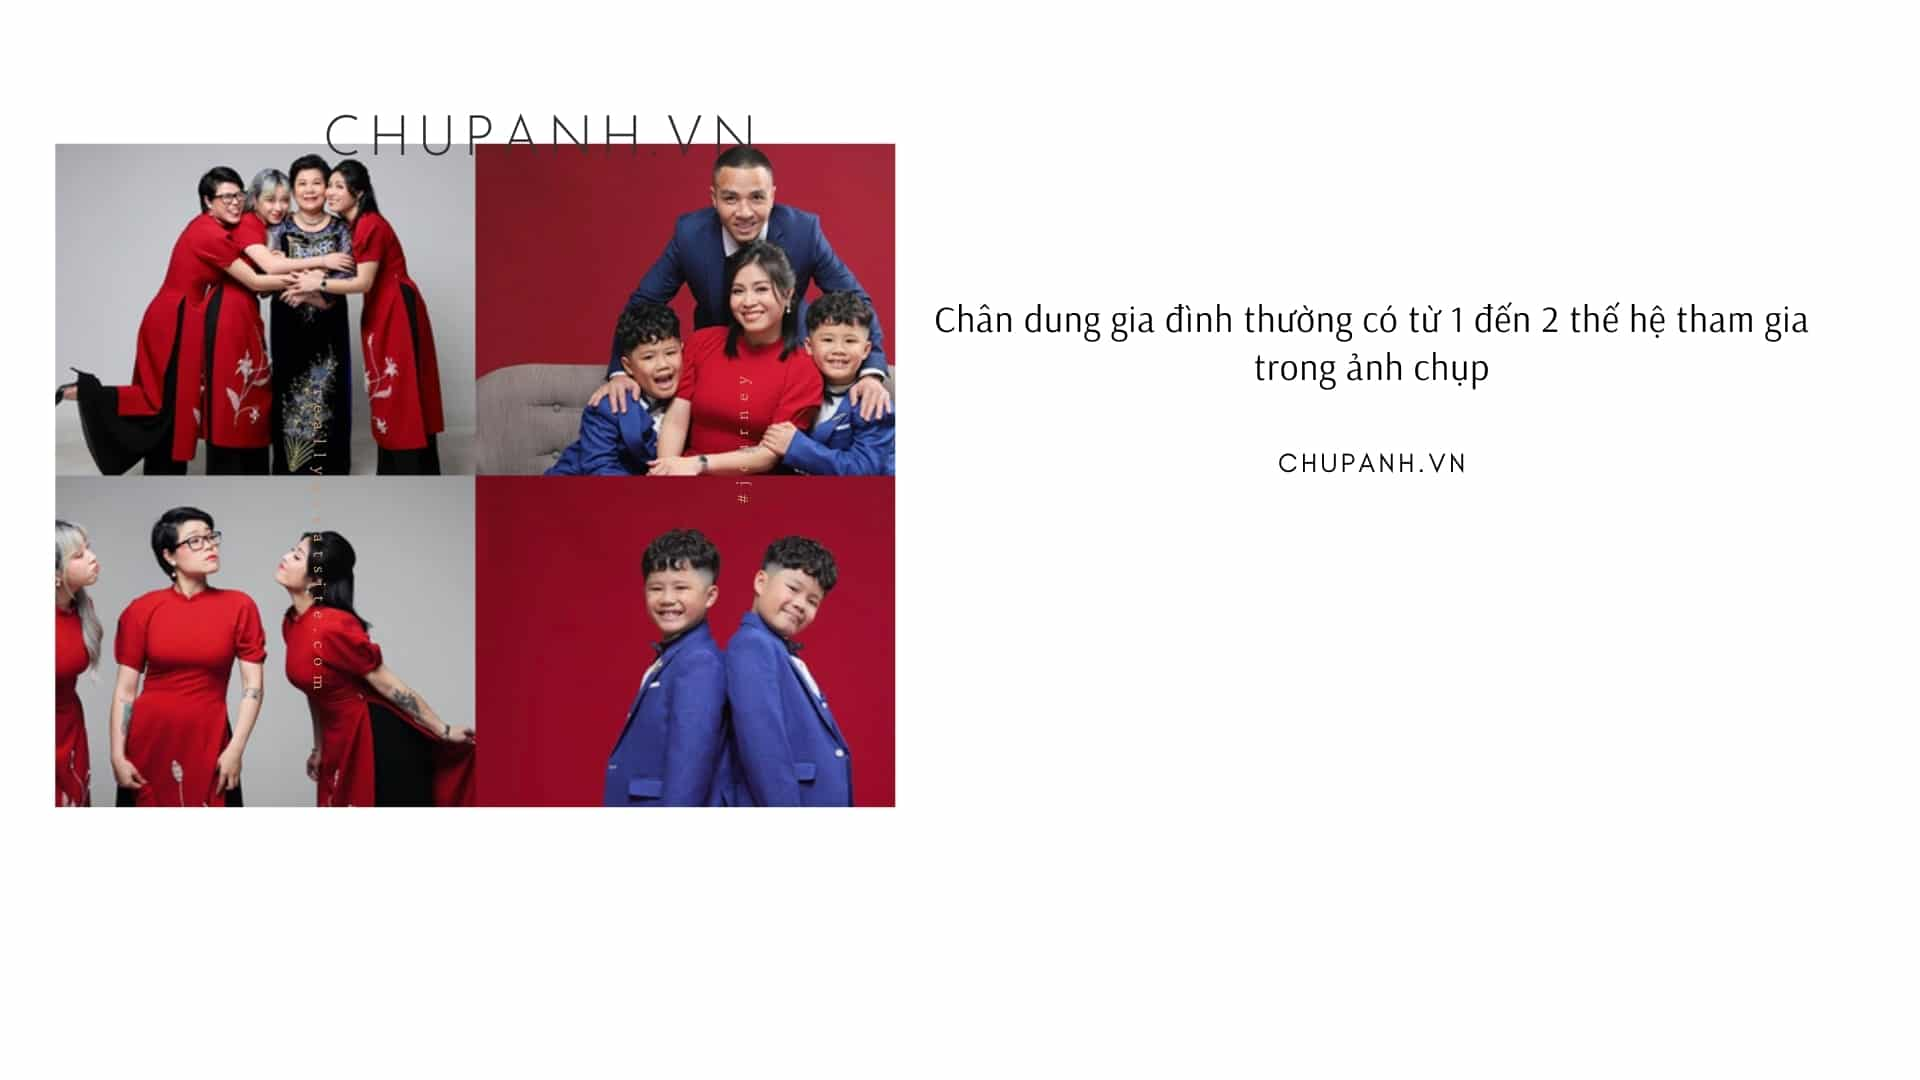 anh chan dung gia dinh 1